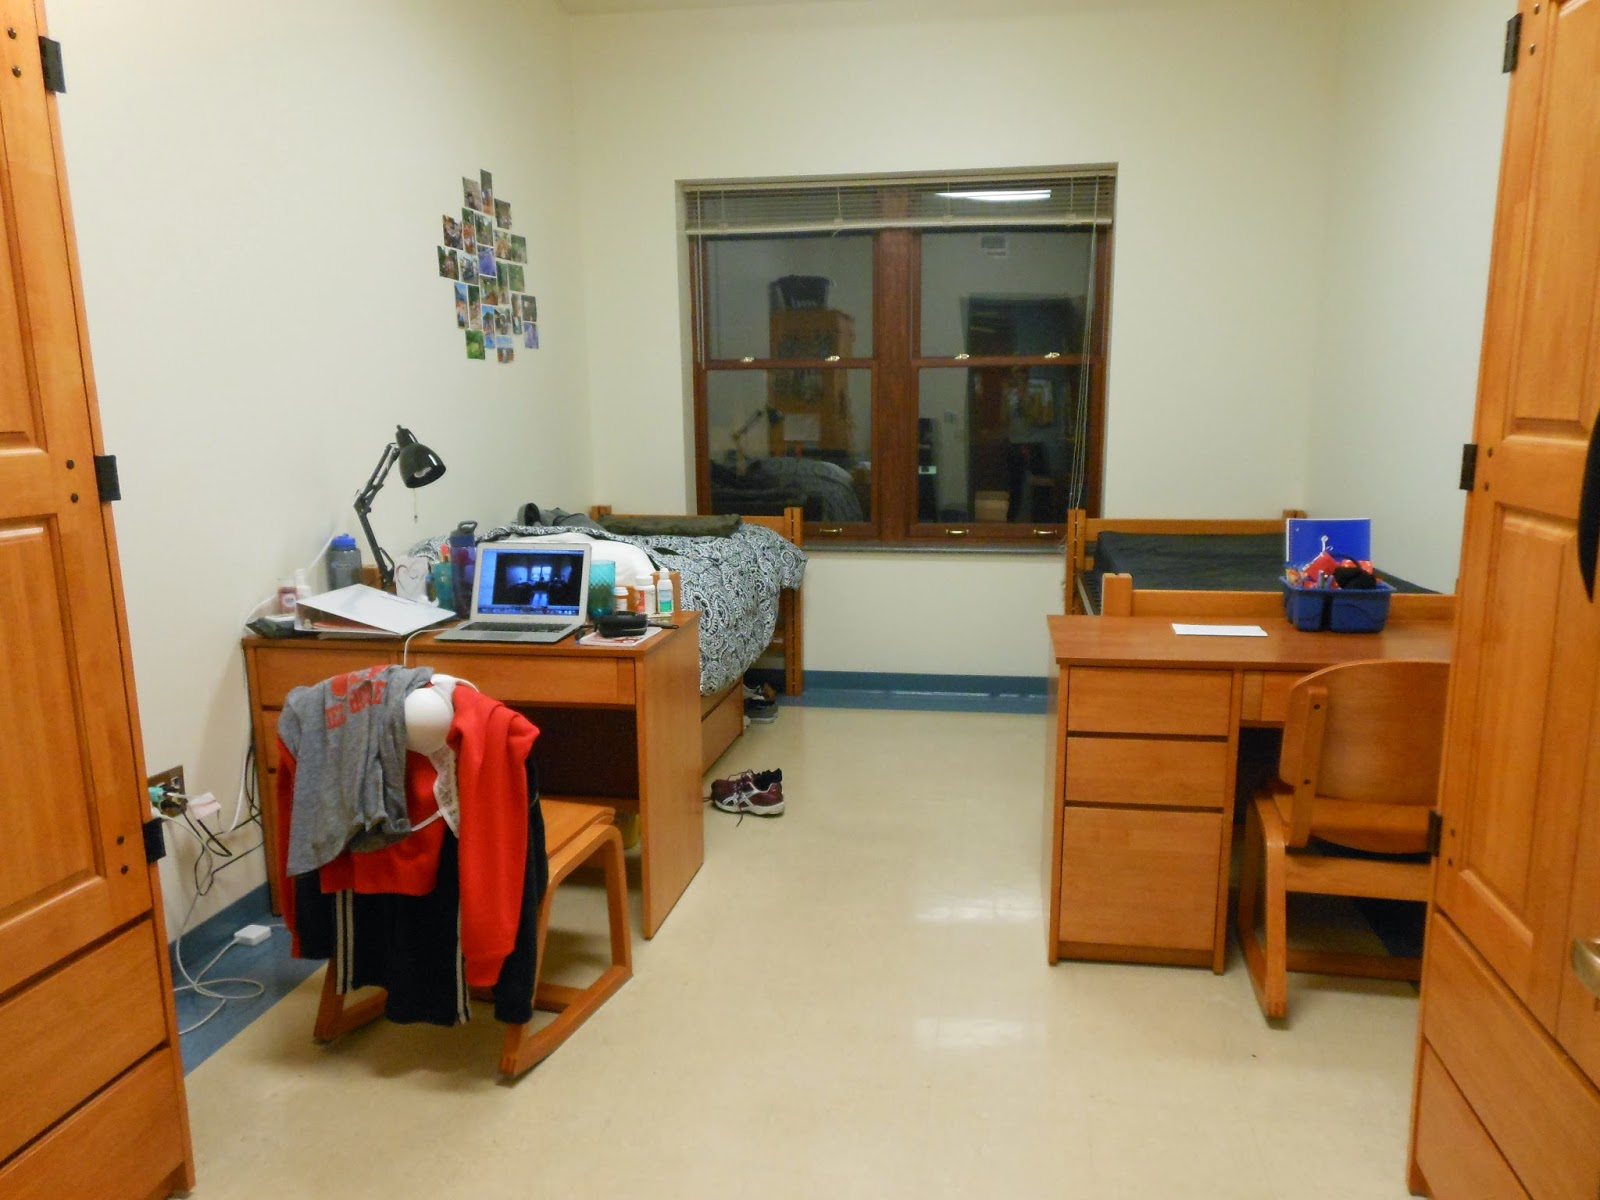 4 Reasons To Send Your Kid To An Overnight Basketball Camp ... |Empty Dorm Room